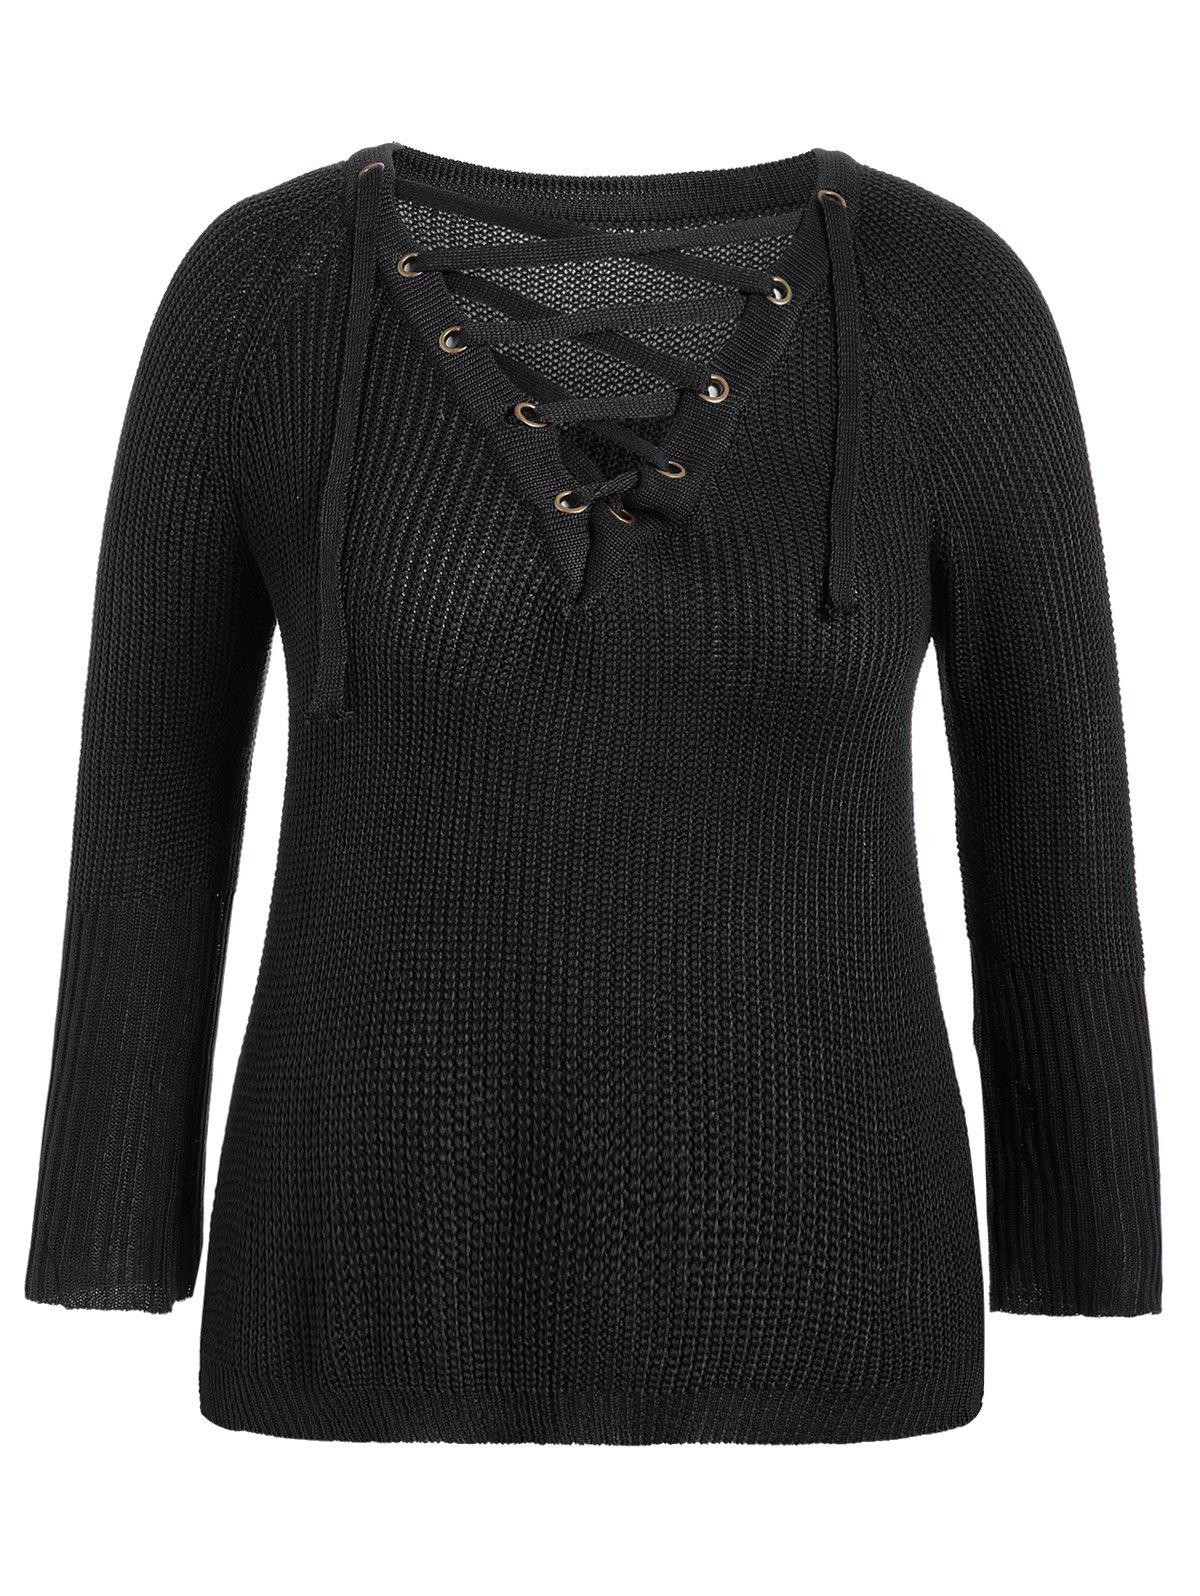 V Neck Lace-Up Pullover Sweater от Dresslily.com INT